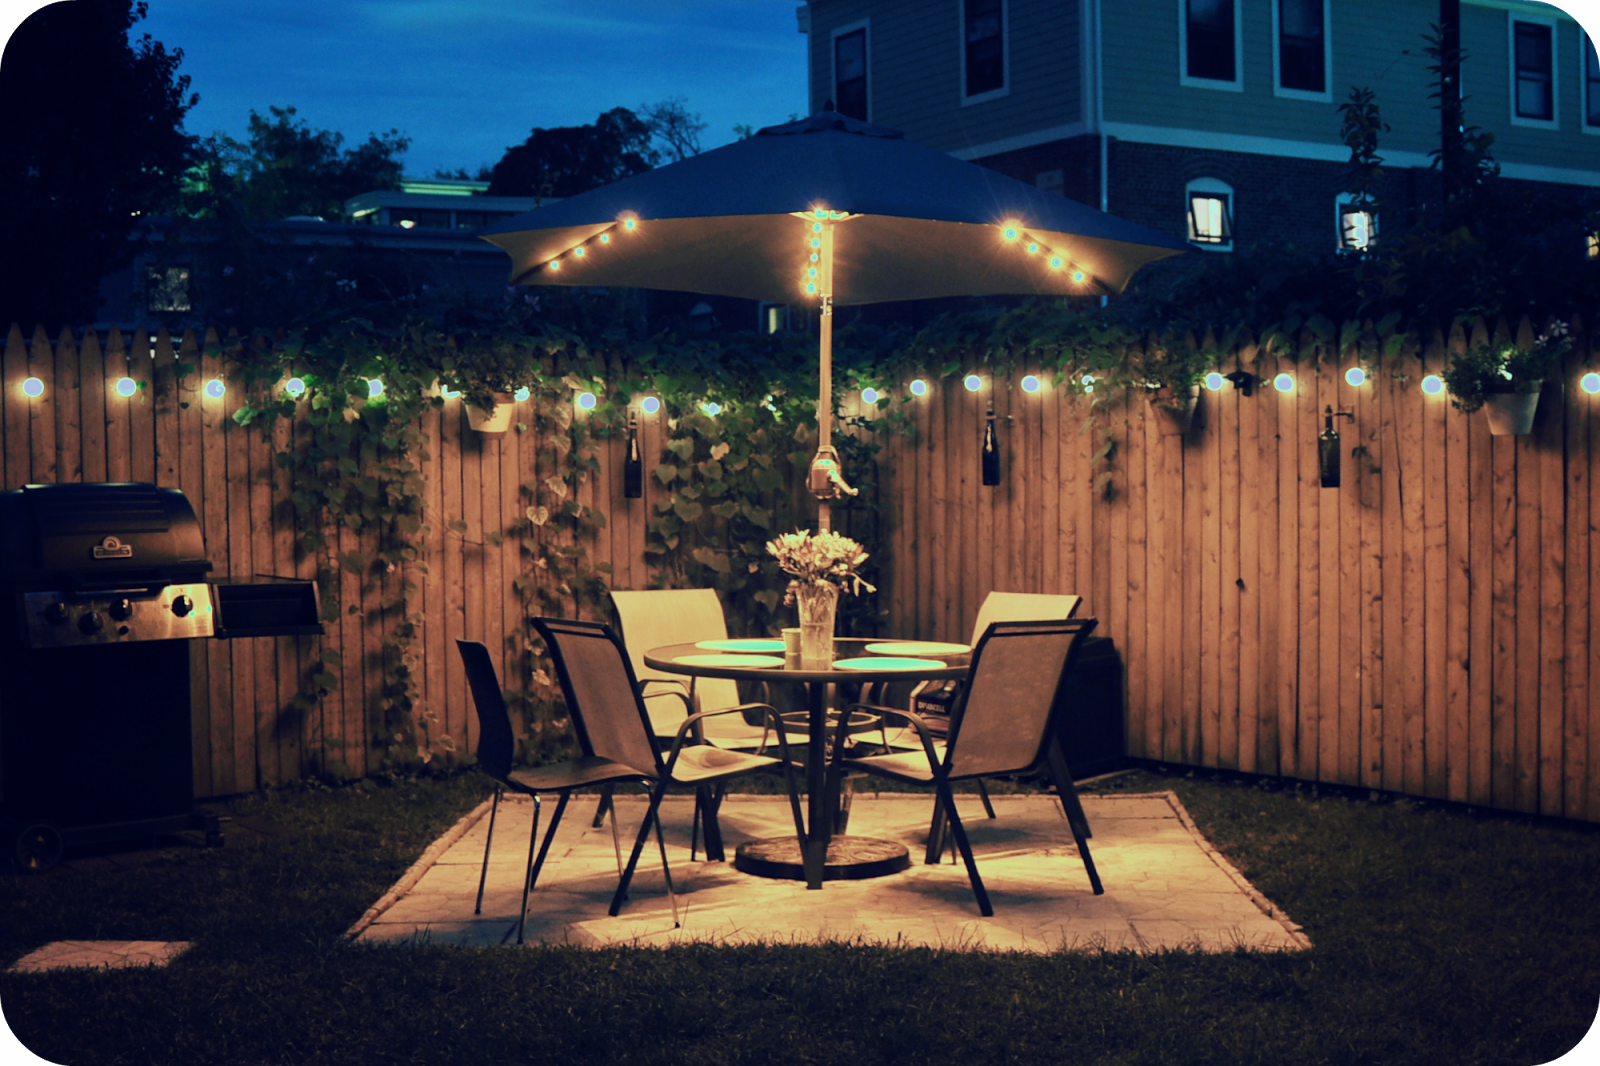 Charmant Brighten Up With: Hanging Solar Lights | Light Decorating Ideas